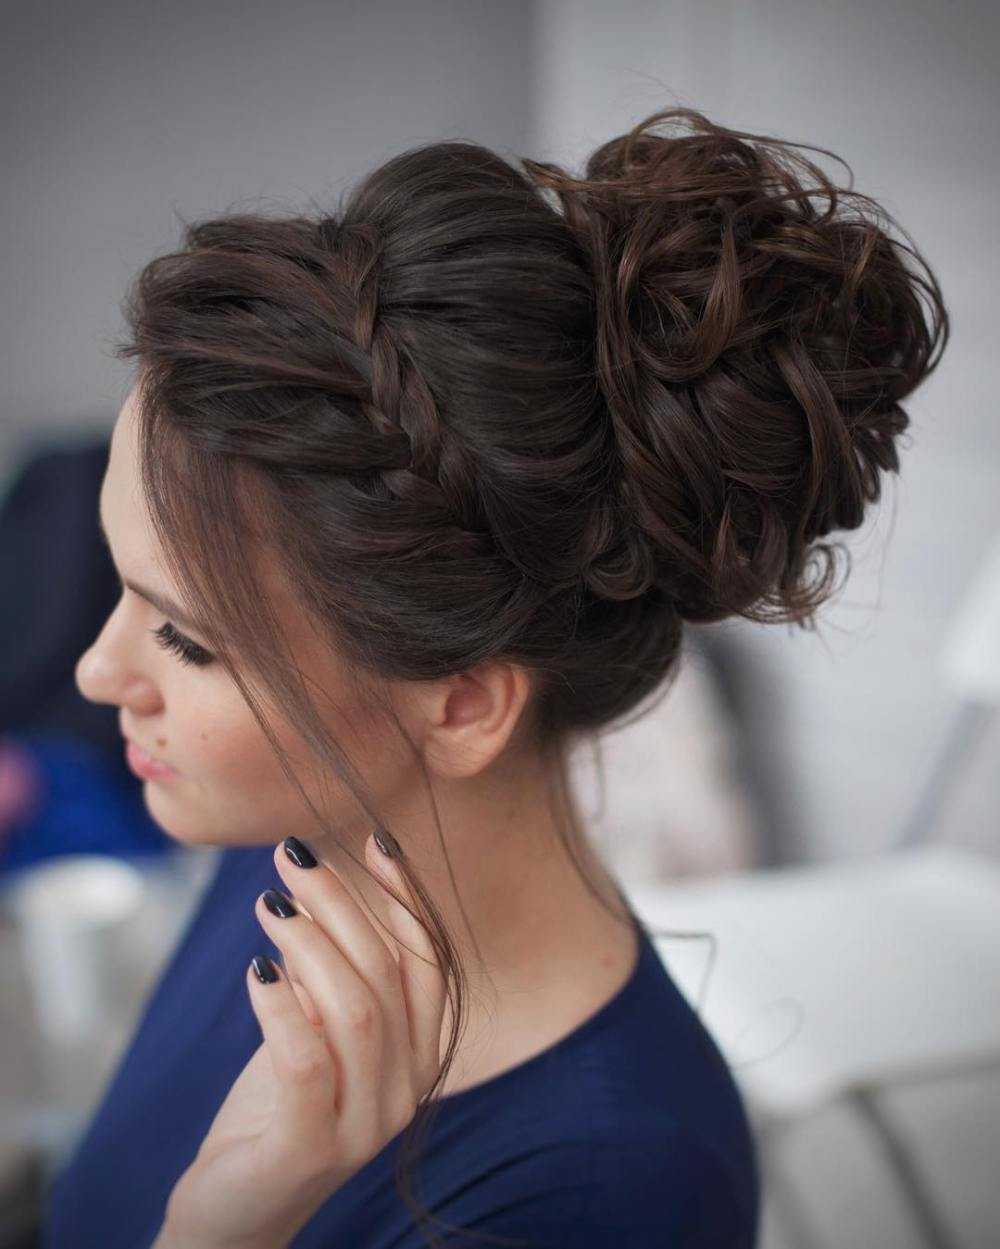 Stylish Prom Hairstyle Ideas For Party